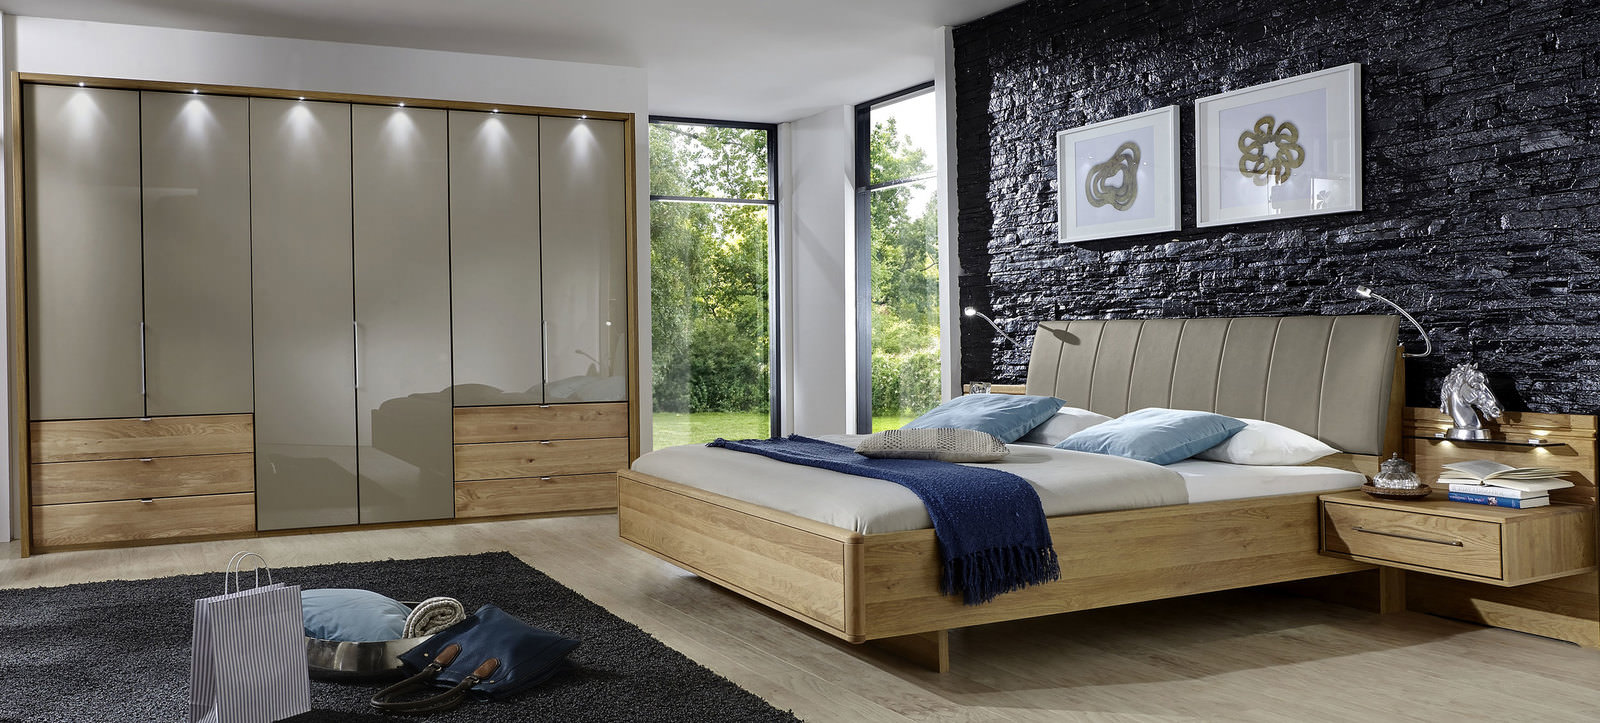 mondo schlafzimmer online entdecken schaffrath ihr m belhaus. Black Bedroom Furniture Sets. Home Design Ideas